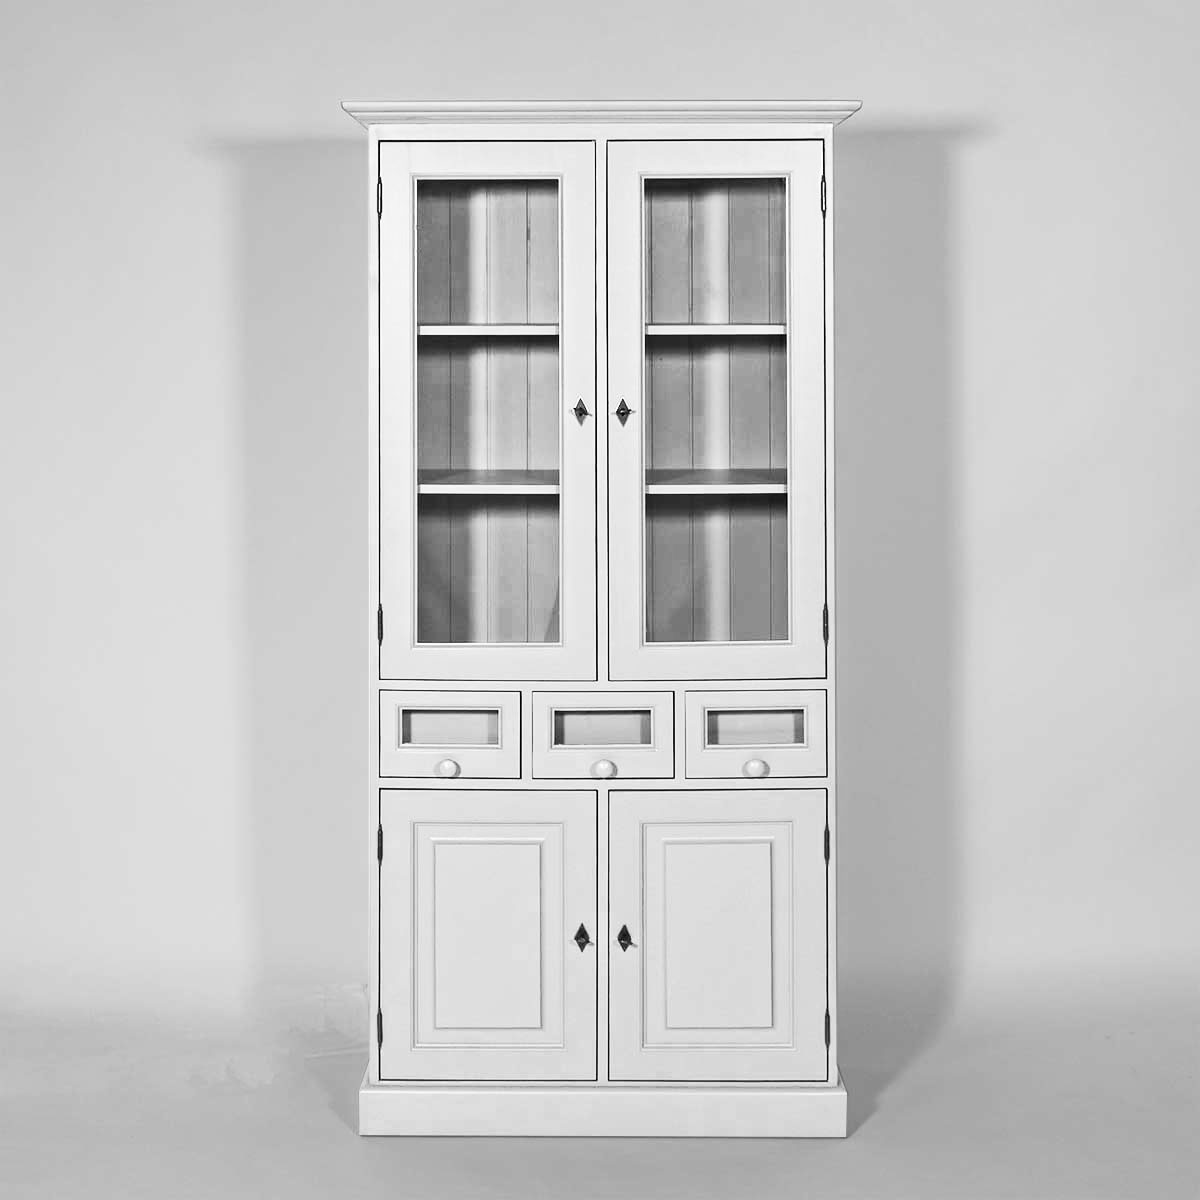 biblioth que bois massif ouverte 6 portes coulissantes noire made in meubles. Black Bedroom Furniture Sets. Home Design Ideas